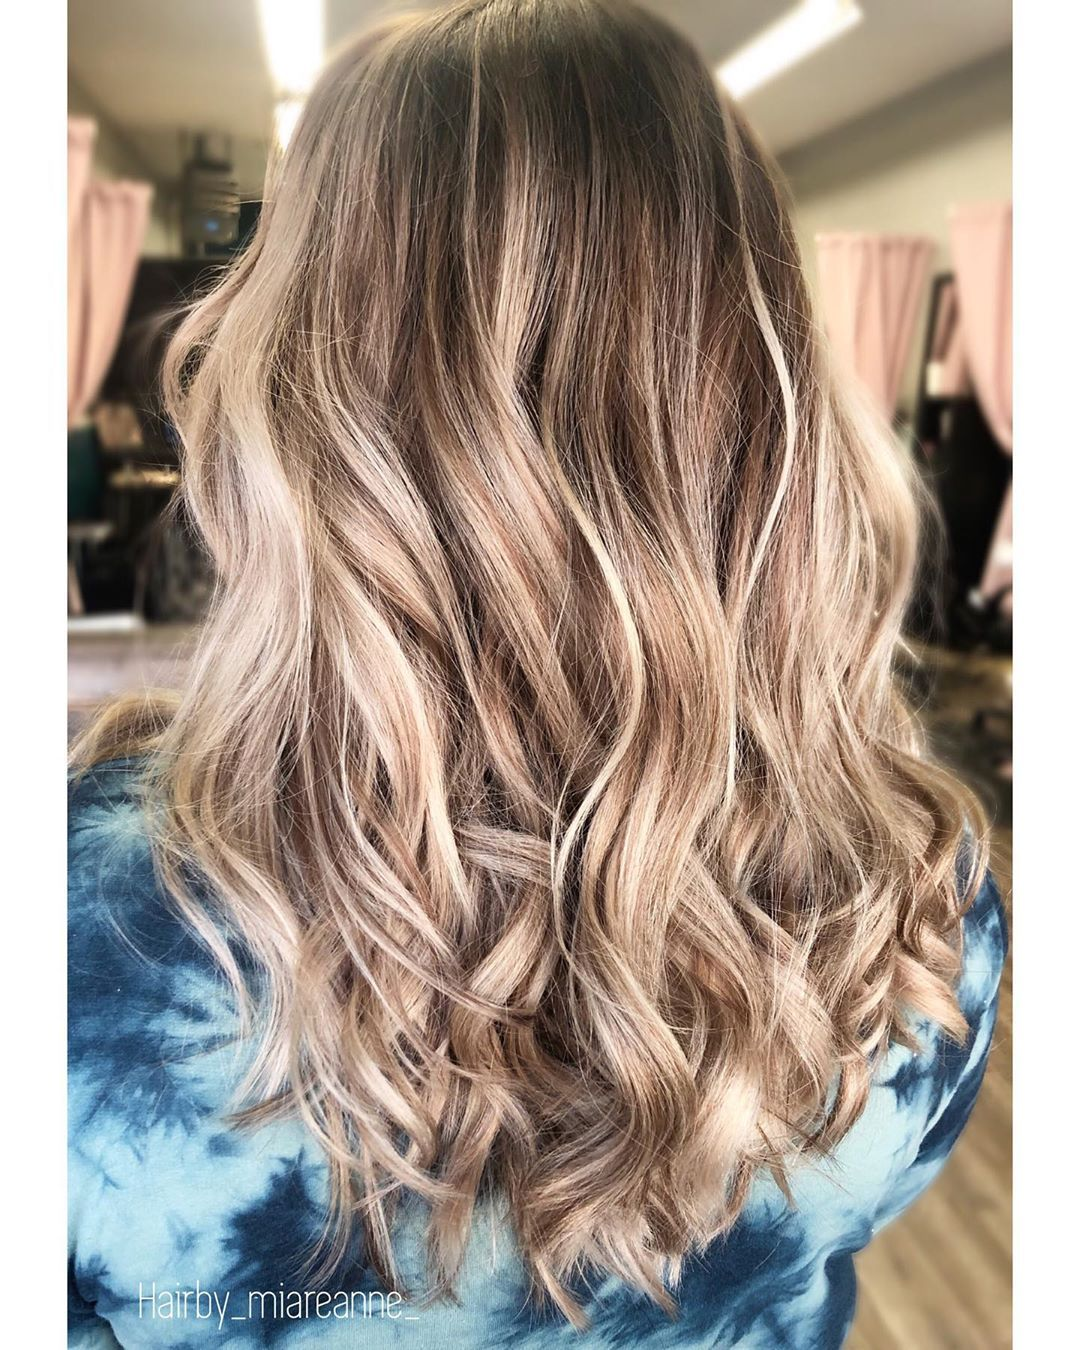 In This Pin We Share Different Hair Color Ideas Hair Color Blonde Hair Color Ideas For Brunettes Blonde Hair Color Short Hair Lengths Medium Length Hair Styles